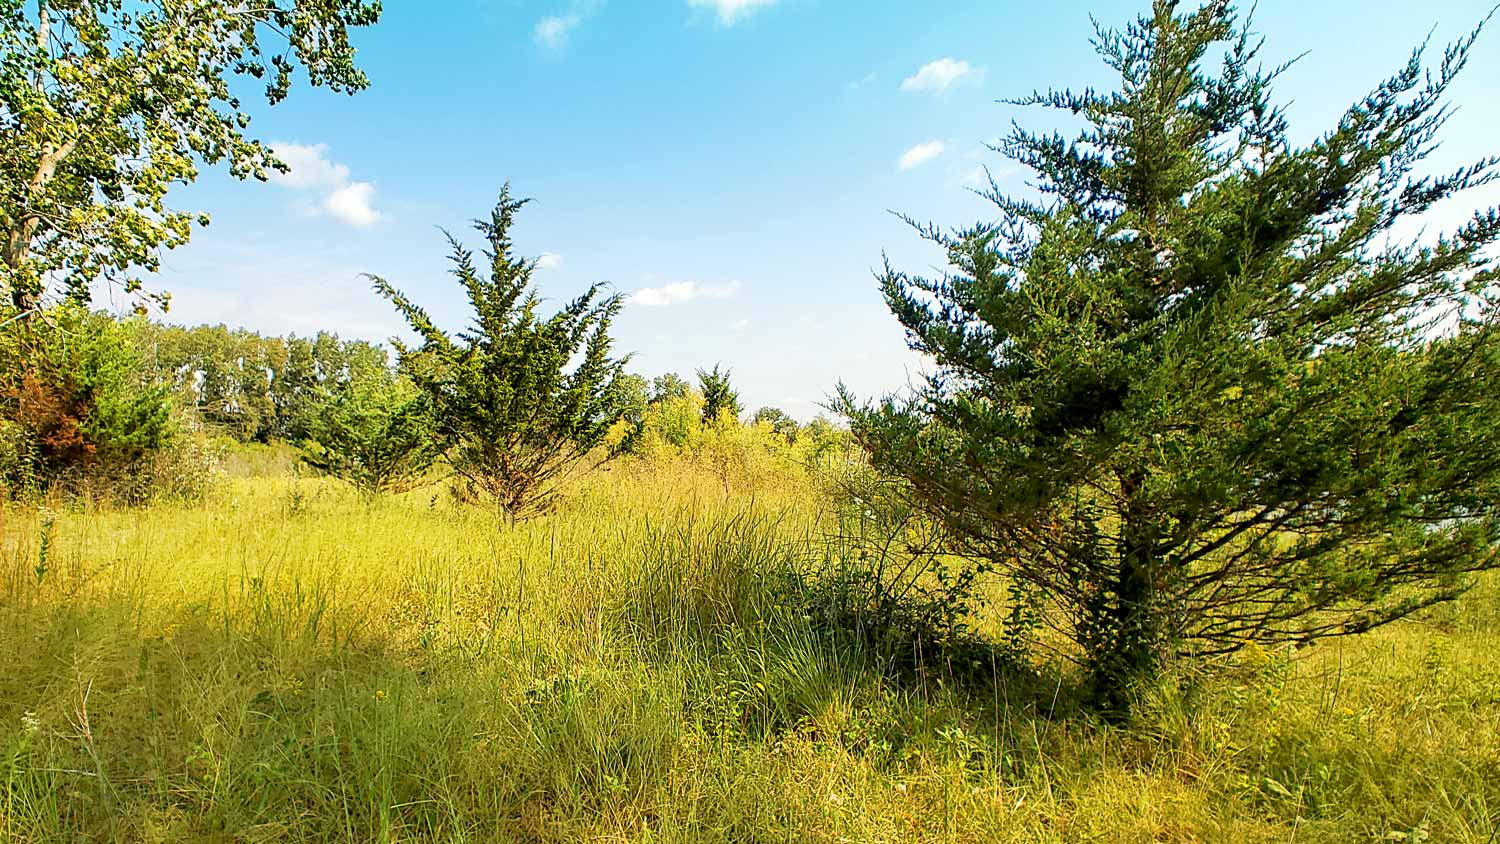 Evergreens among yellow-green grasses at The Hollows.